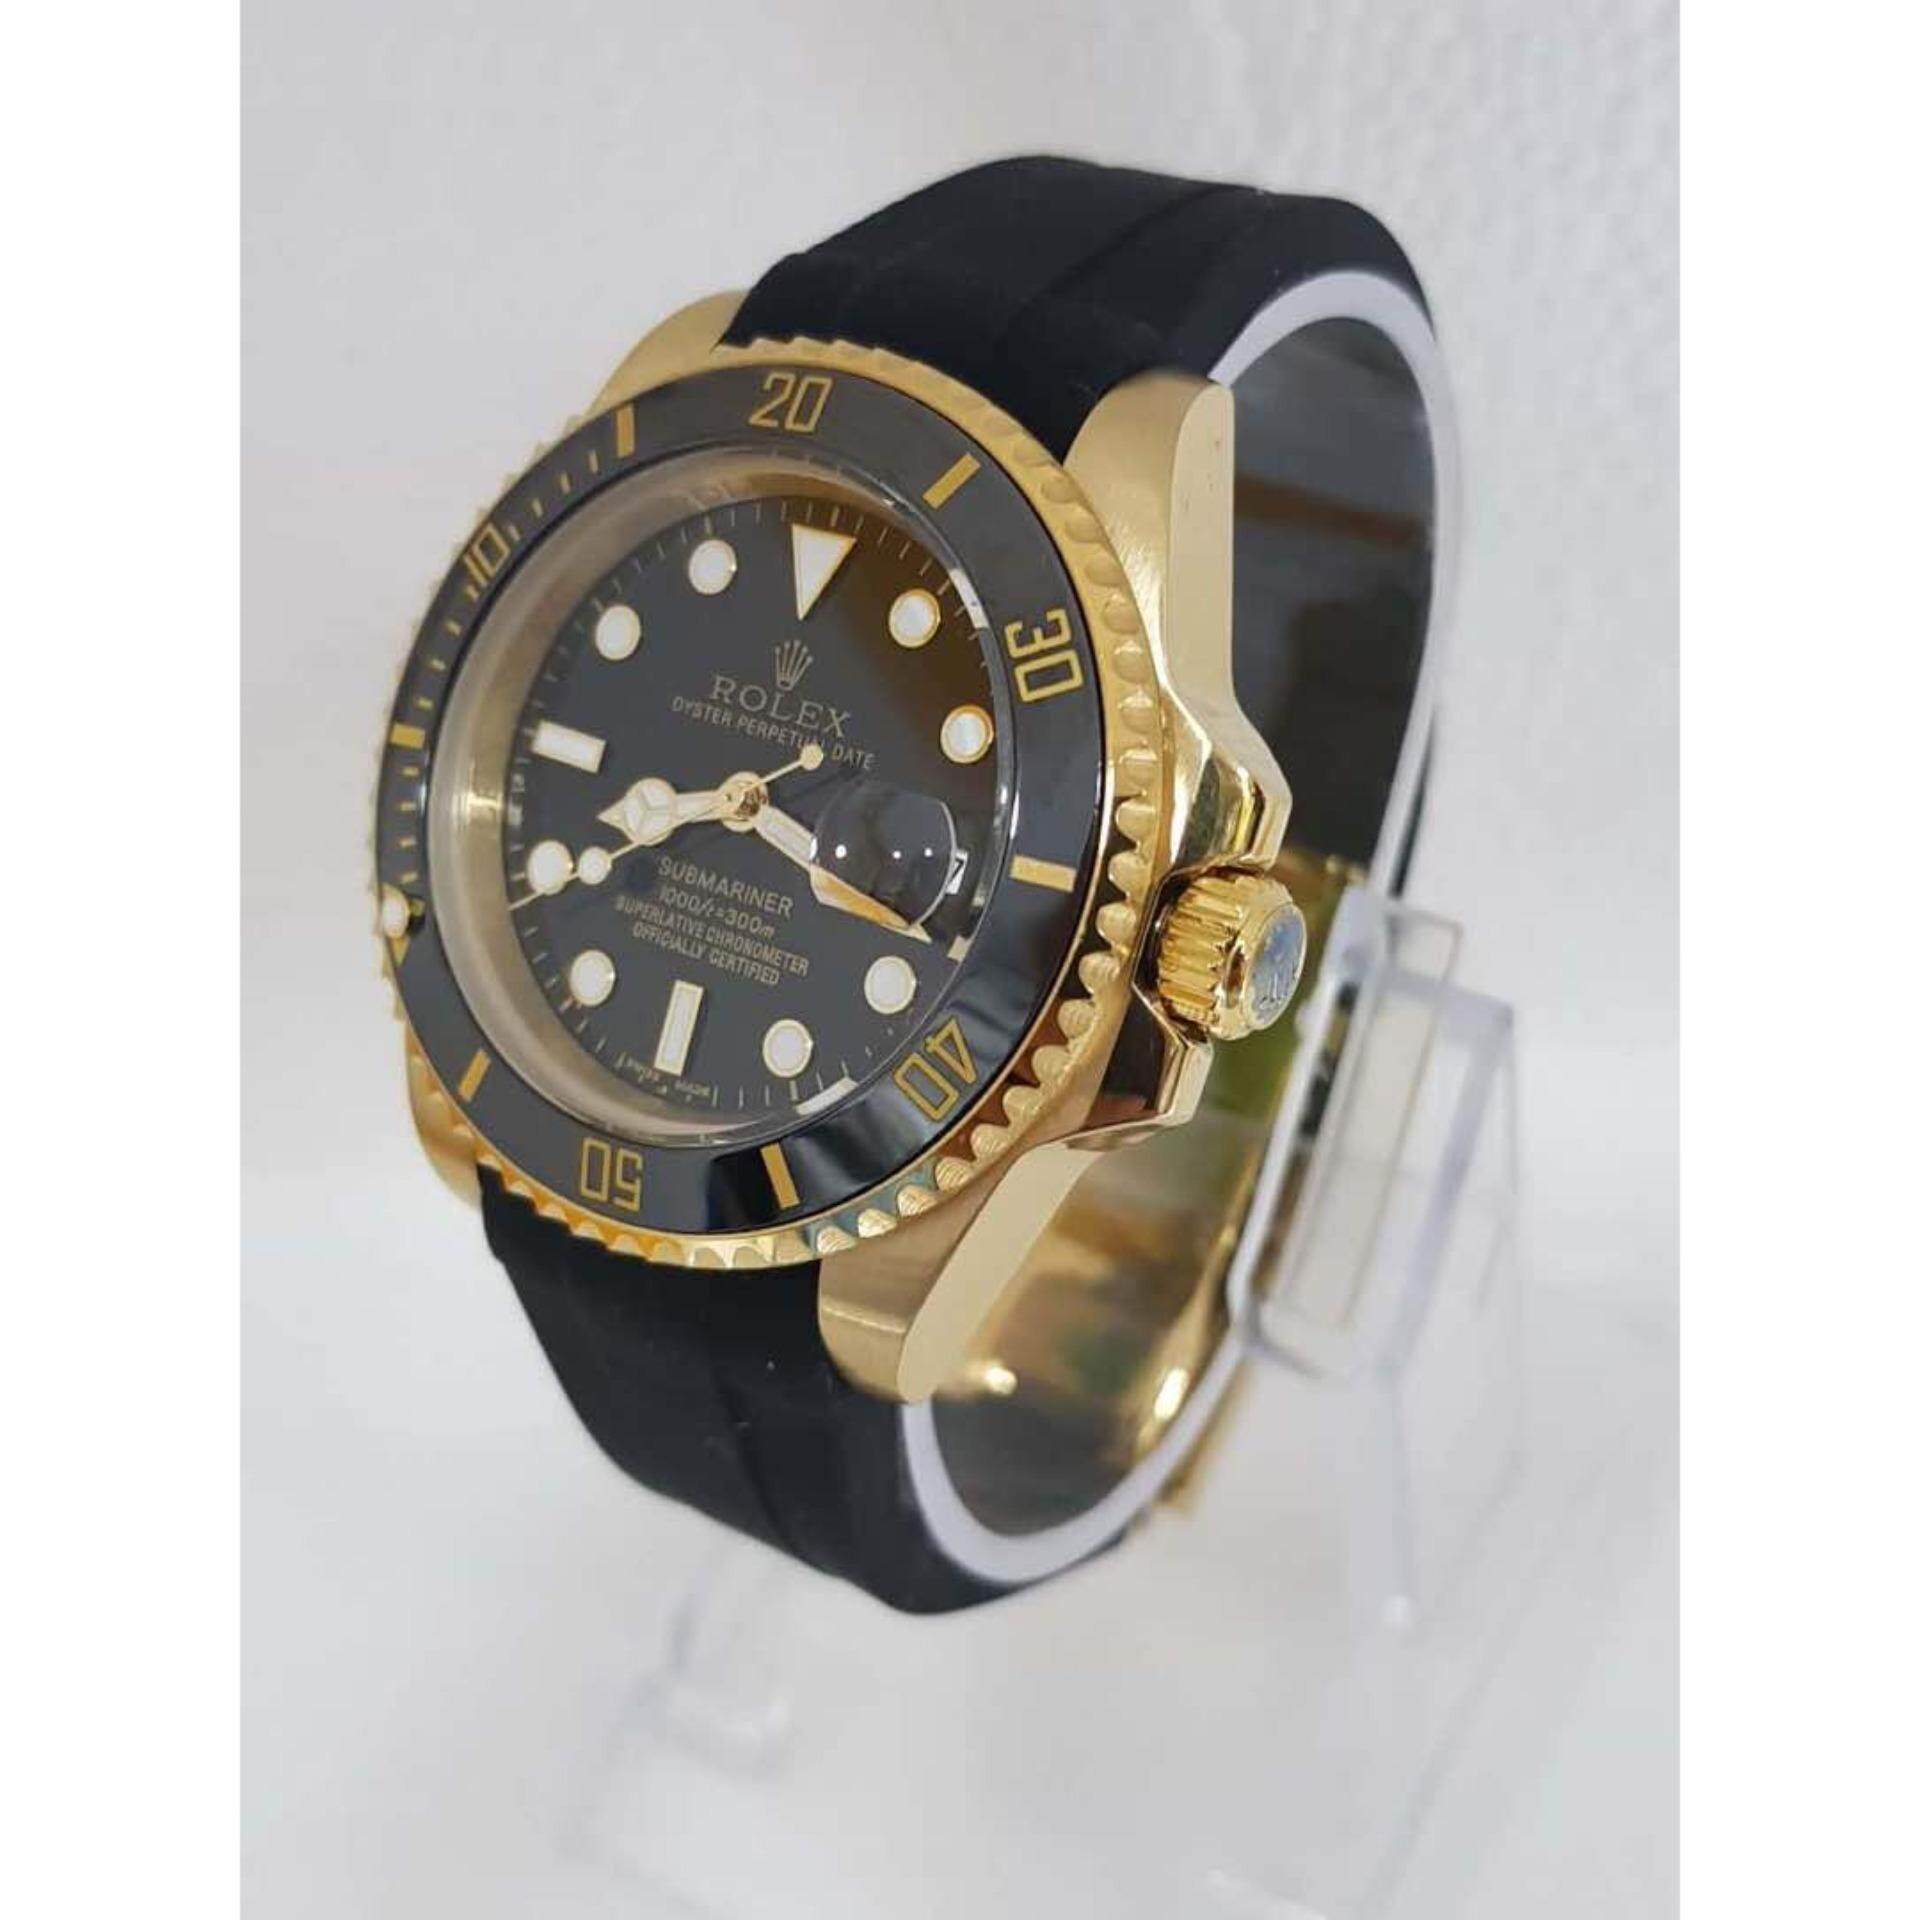 crown rolex sub watches mariner wrist submariner them all big report of rarest i the passion